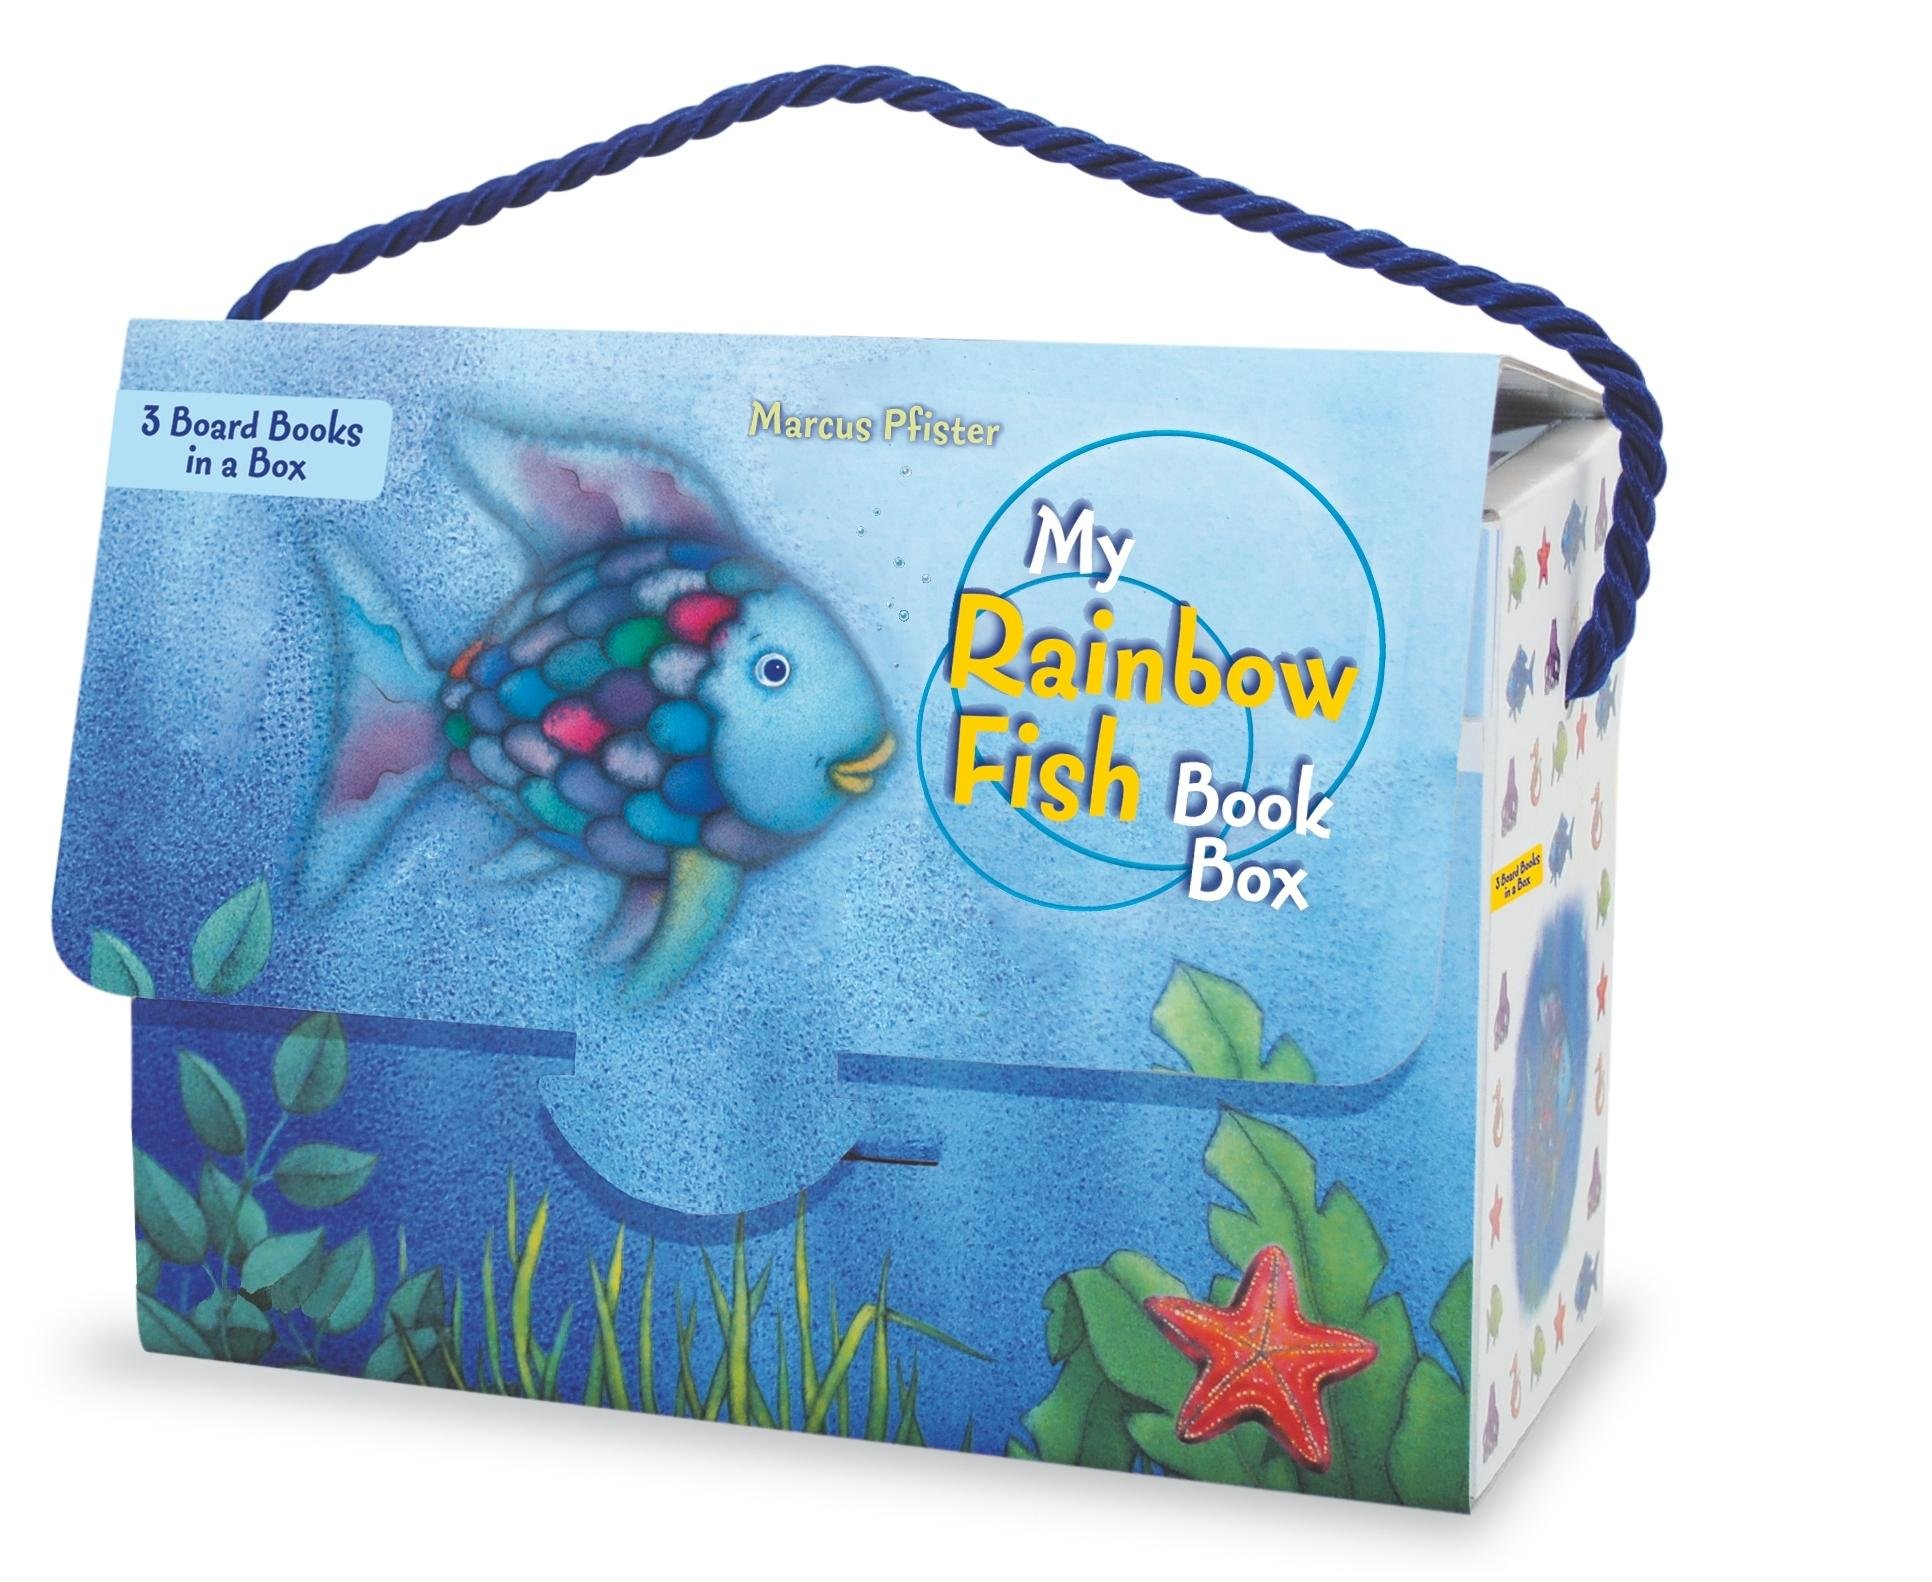 Rainbow Fish Book Read Online my Rainbow Fish Book Box